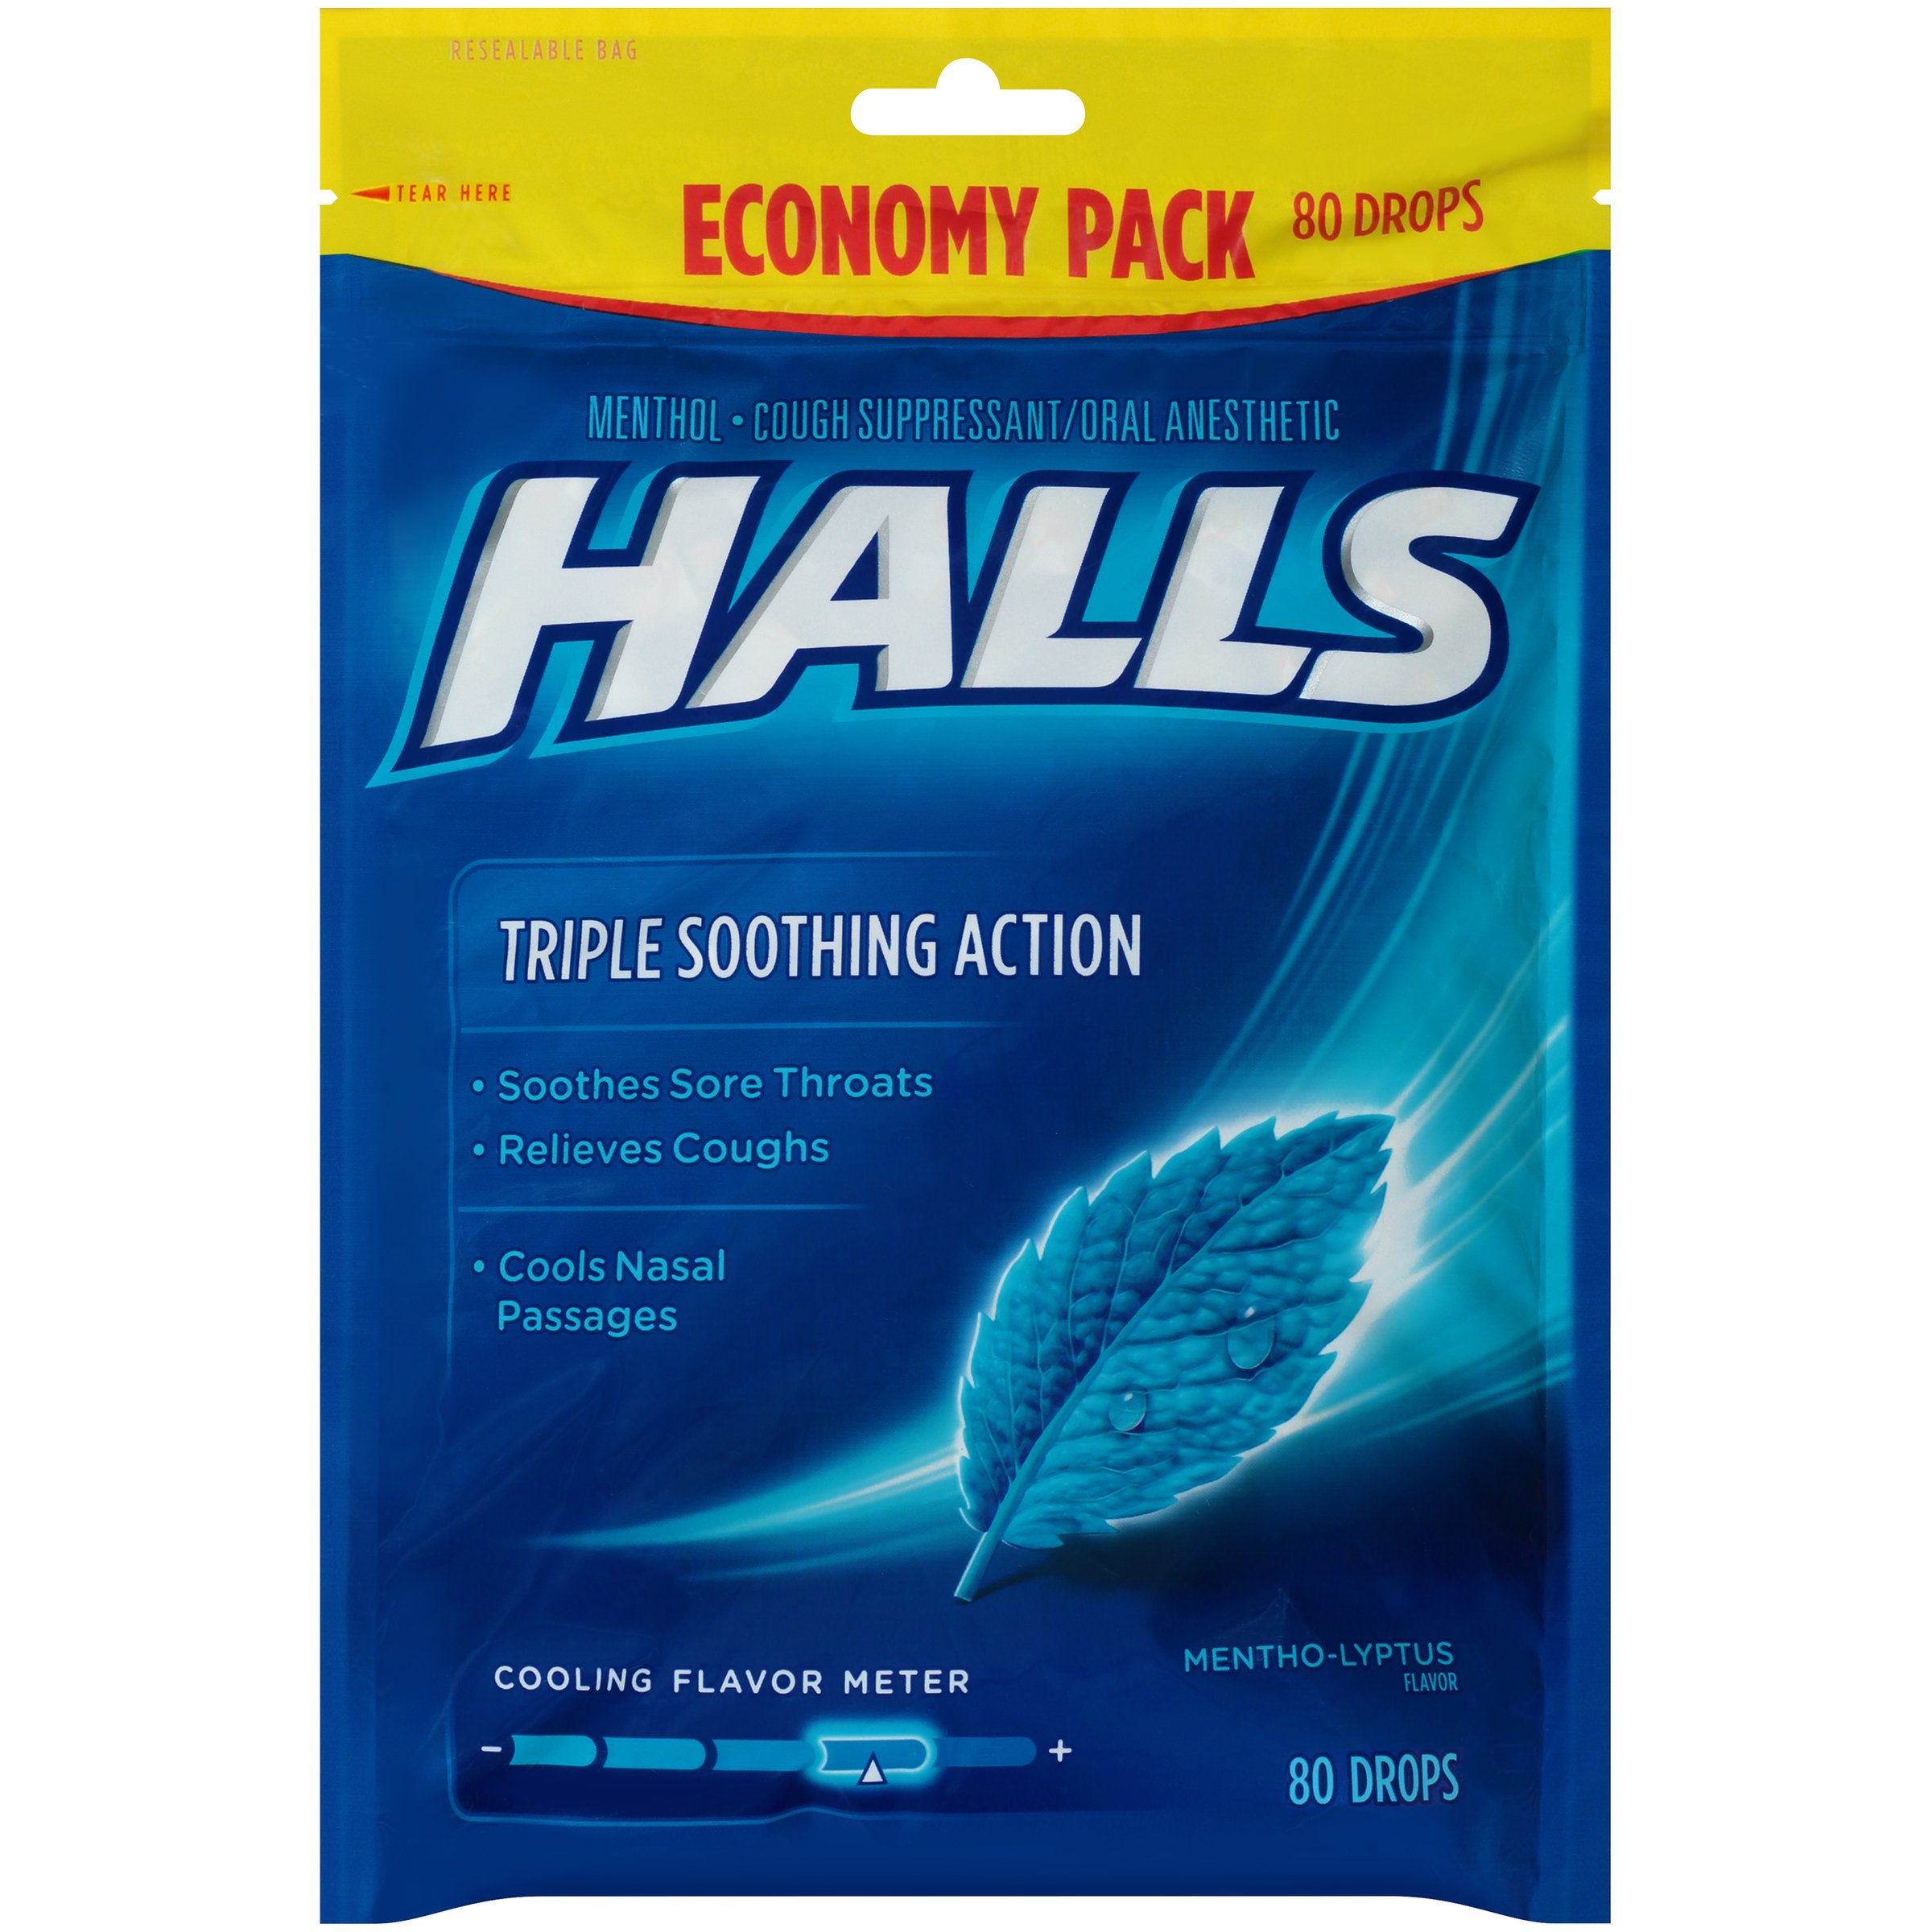 HALLS Cough Drops, (Mentho-Lyptus, 80 Drops, 12-Pack) by Halls